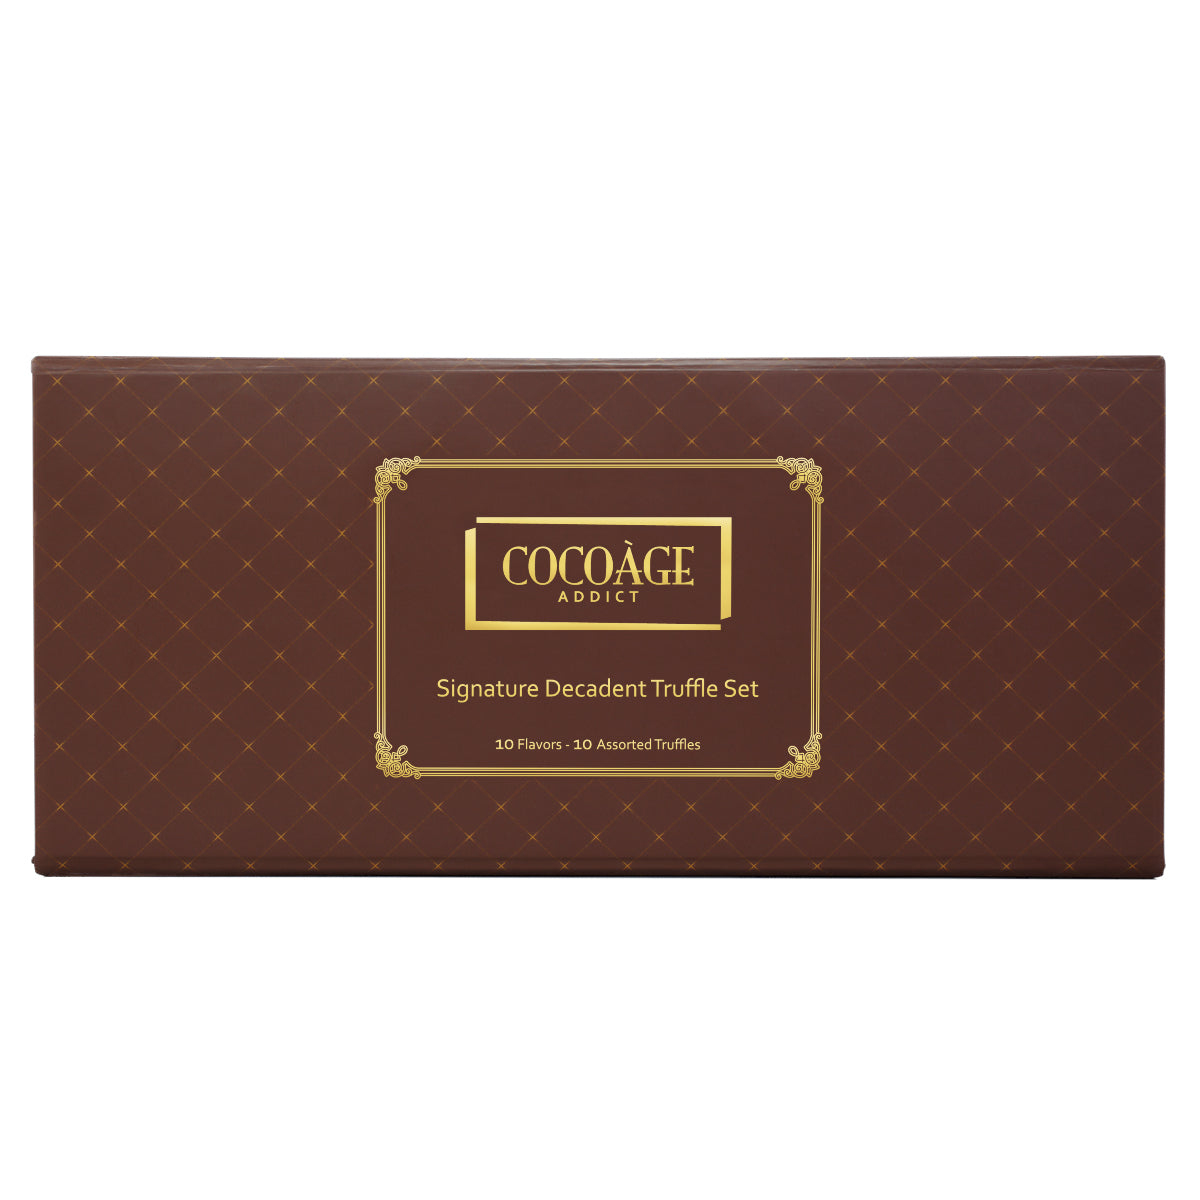 Signature Decadent Truffle Set - 10 Piece Assorted Truffles - Cocoage Addict